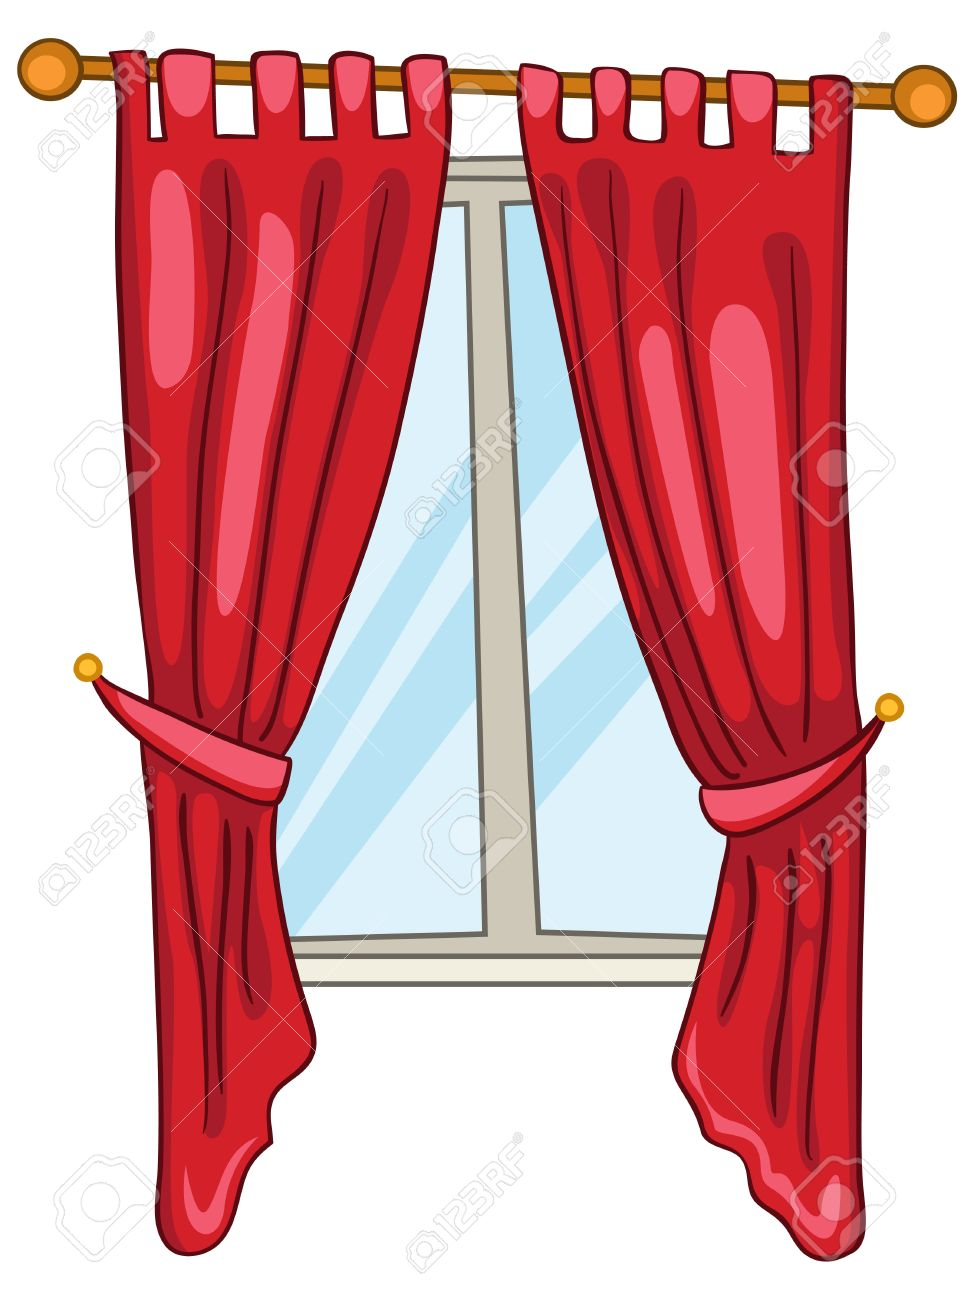 Cartoon Home Window Royalty Free Cliparts, Vectors, And Stock ... for Window With Curtains Clipart  585ifm